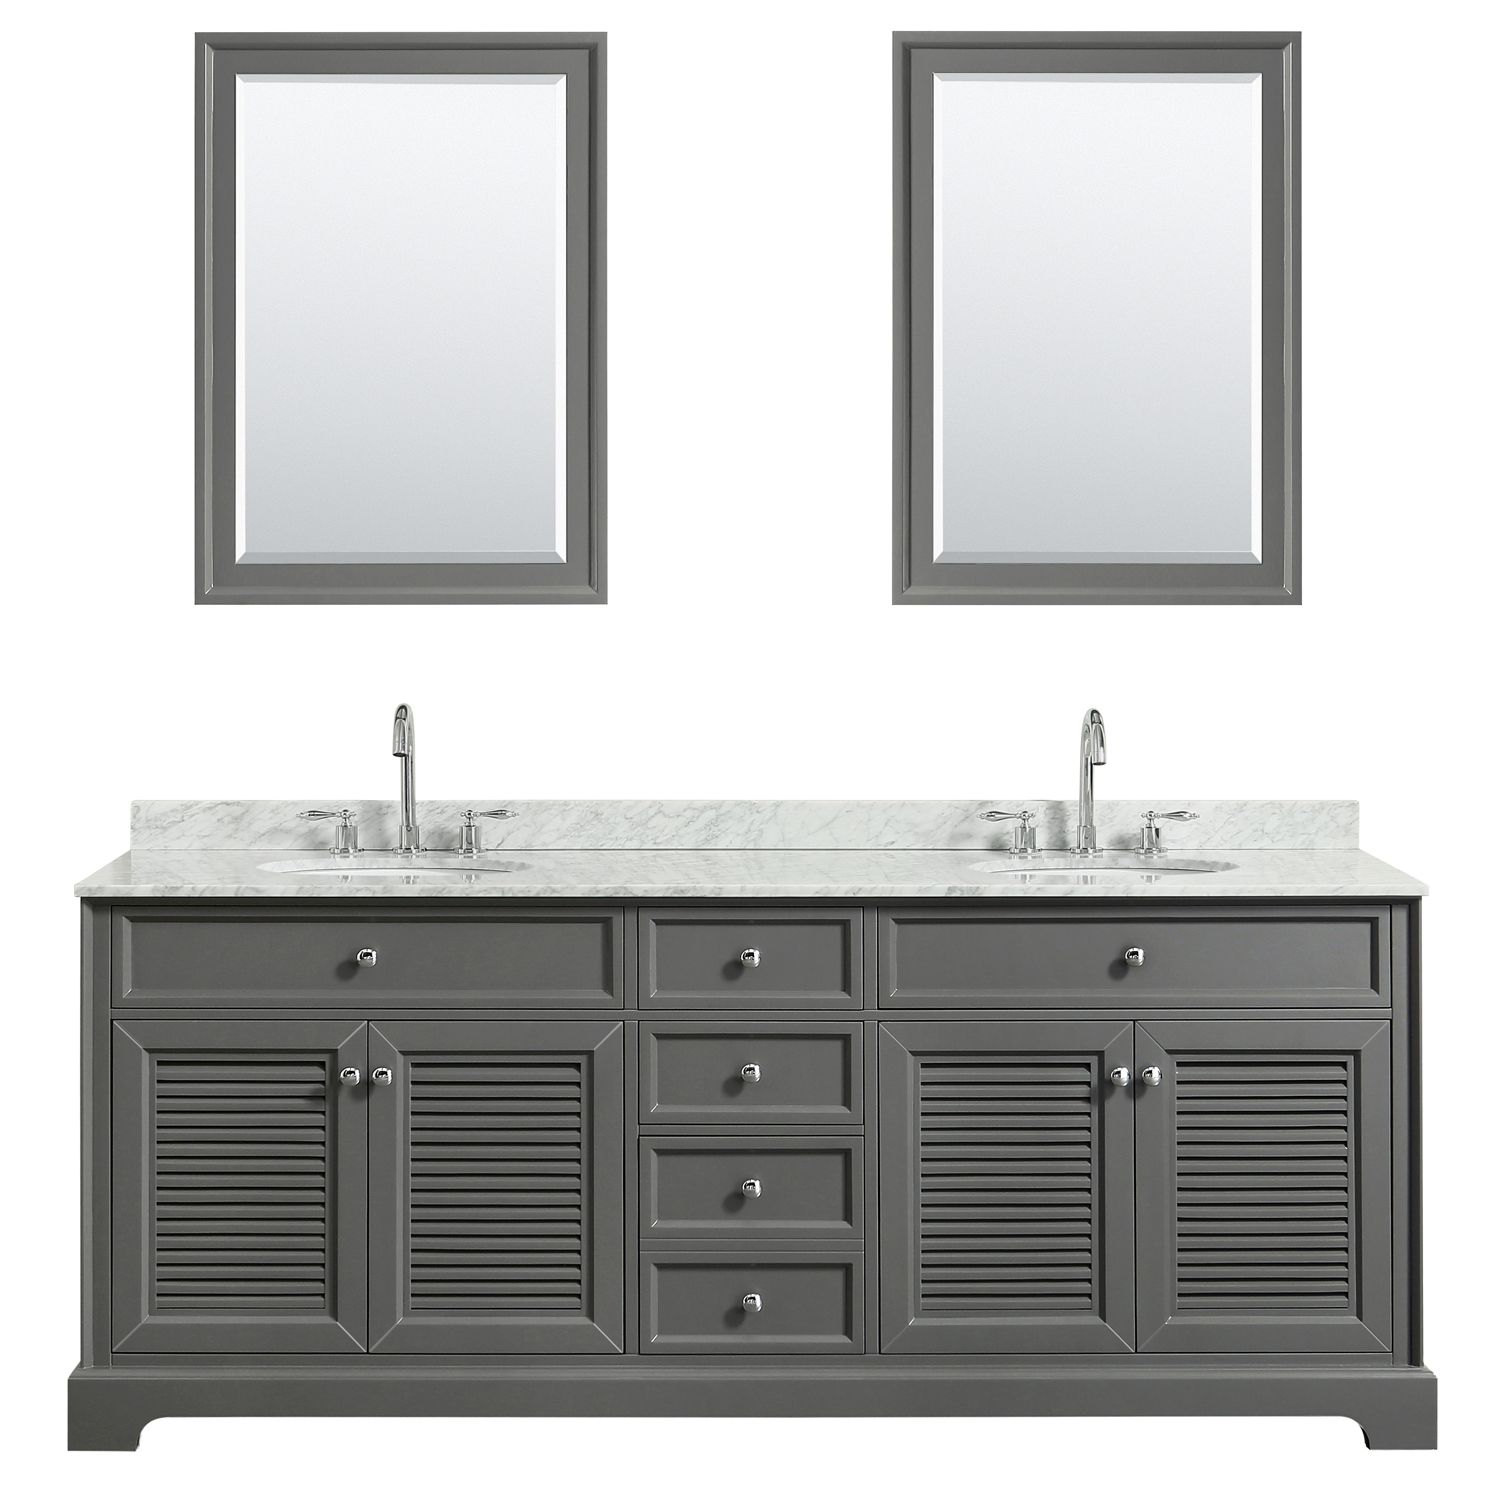 "80"" Double Bathroom Vanity in White Carrara Marble Countertop with Undermount Sinks, Medicine Cabinet, Mirror and Color Options"